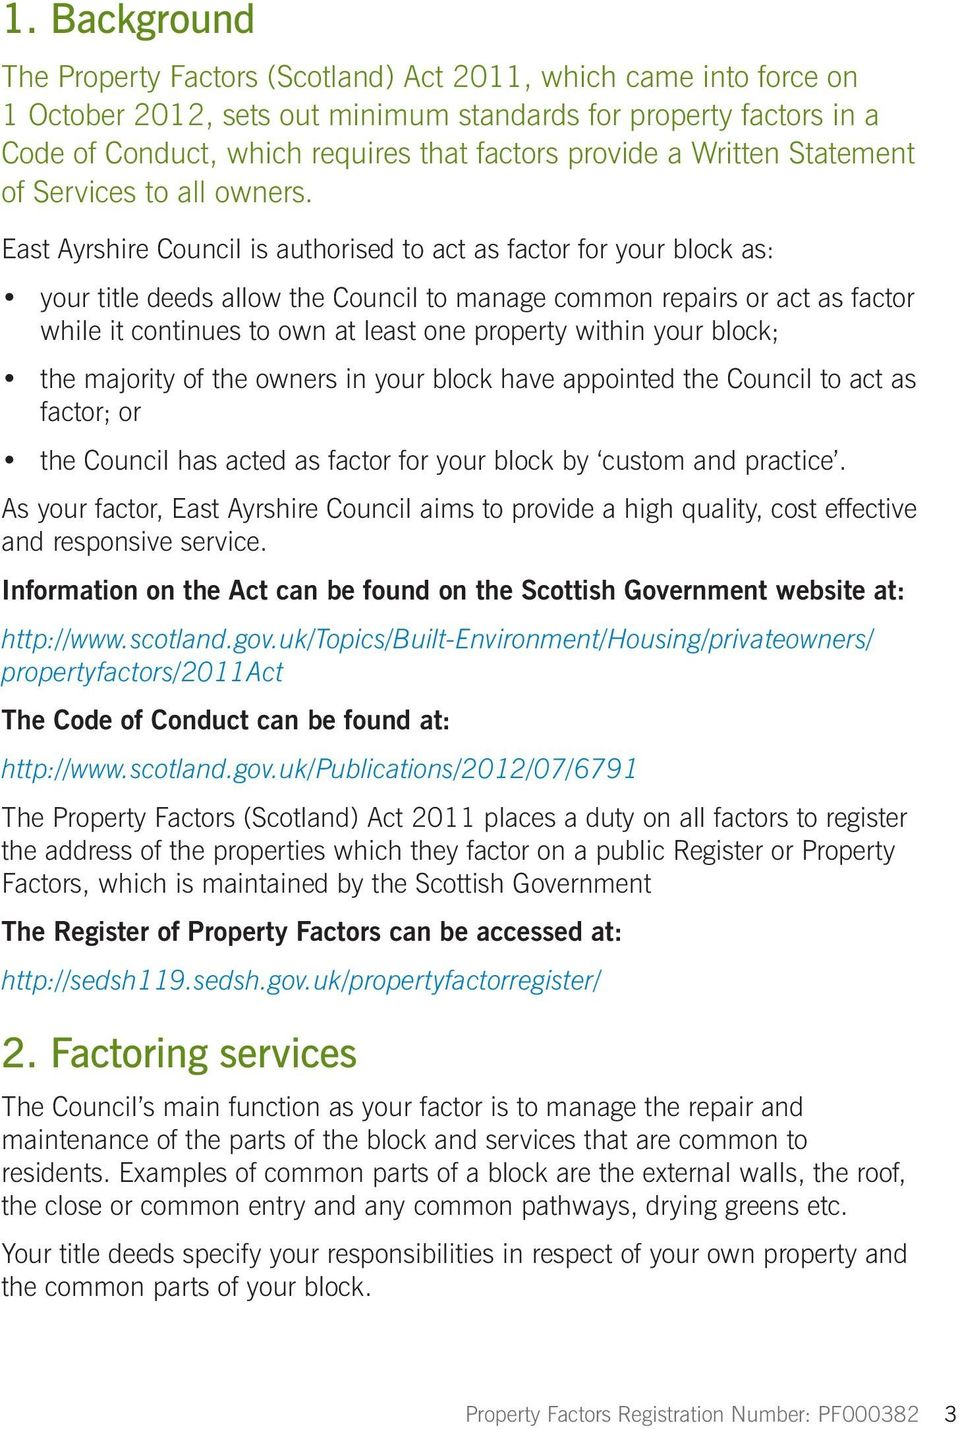 East Ayrshire Council is authorised to act as factor for your block as: your title deeds allow the Council to manage common repairs or act as factor while it continues to own at least one property